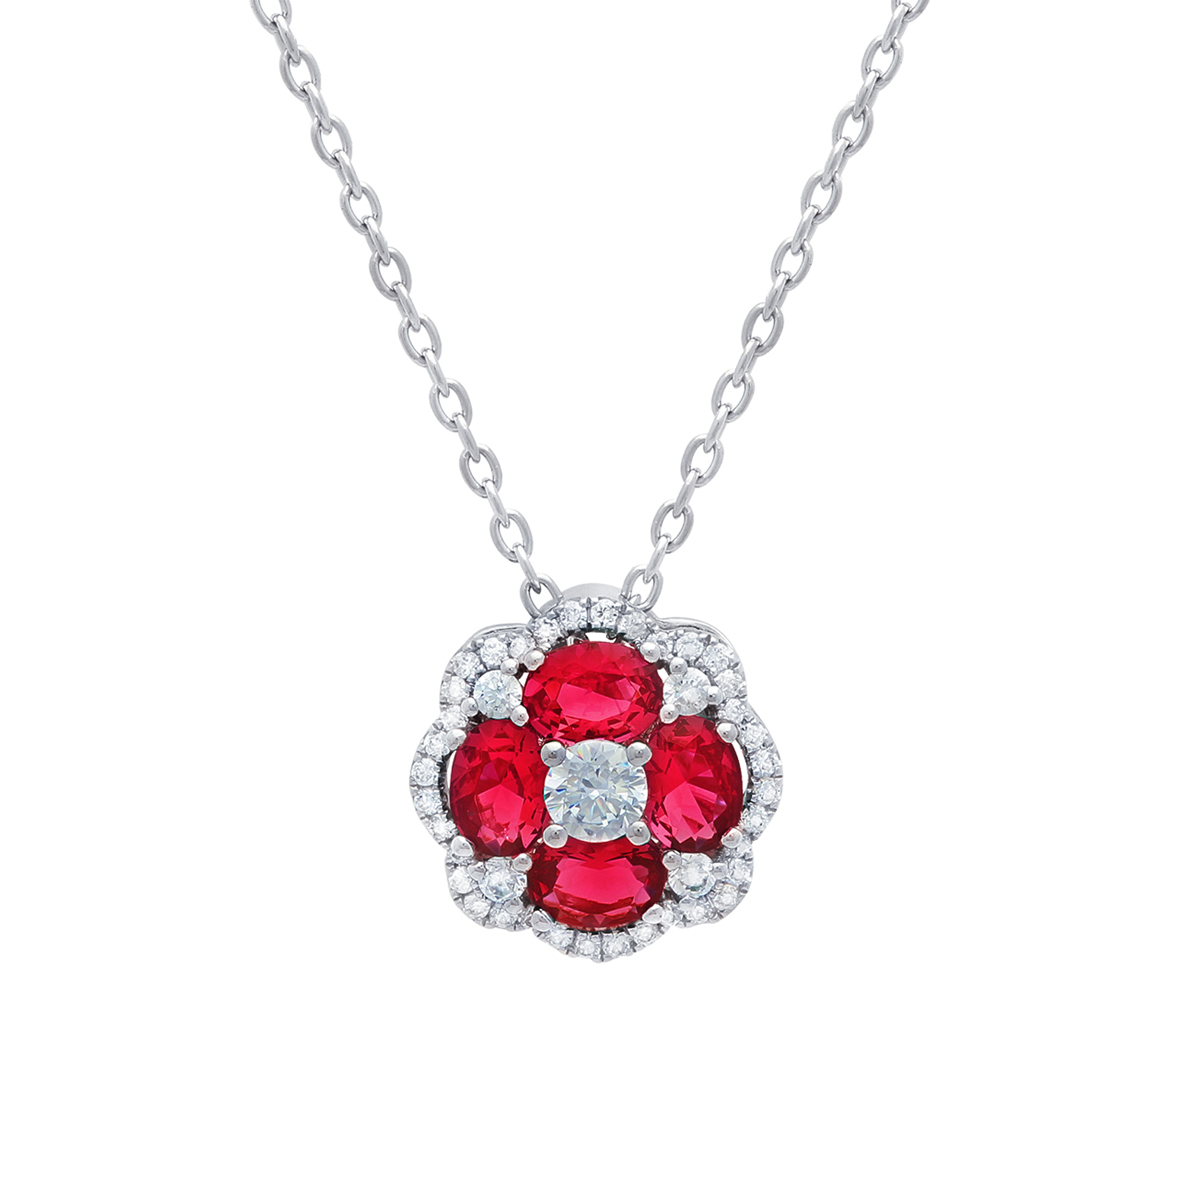 All I Adore Ruby and Diamond Cluster Pendant - This all I adore ruby and diamond cluster pendant comes in a variety of material types like 14k white gold, yellow gold, rose gold and can be customized with your jeweler. Fana gemstone earrings are perfect for that special woman in your life.